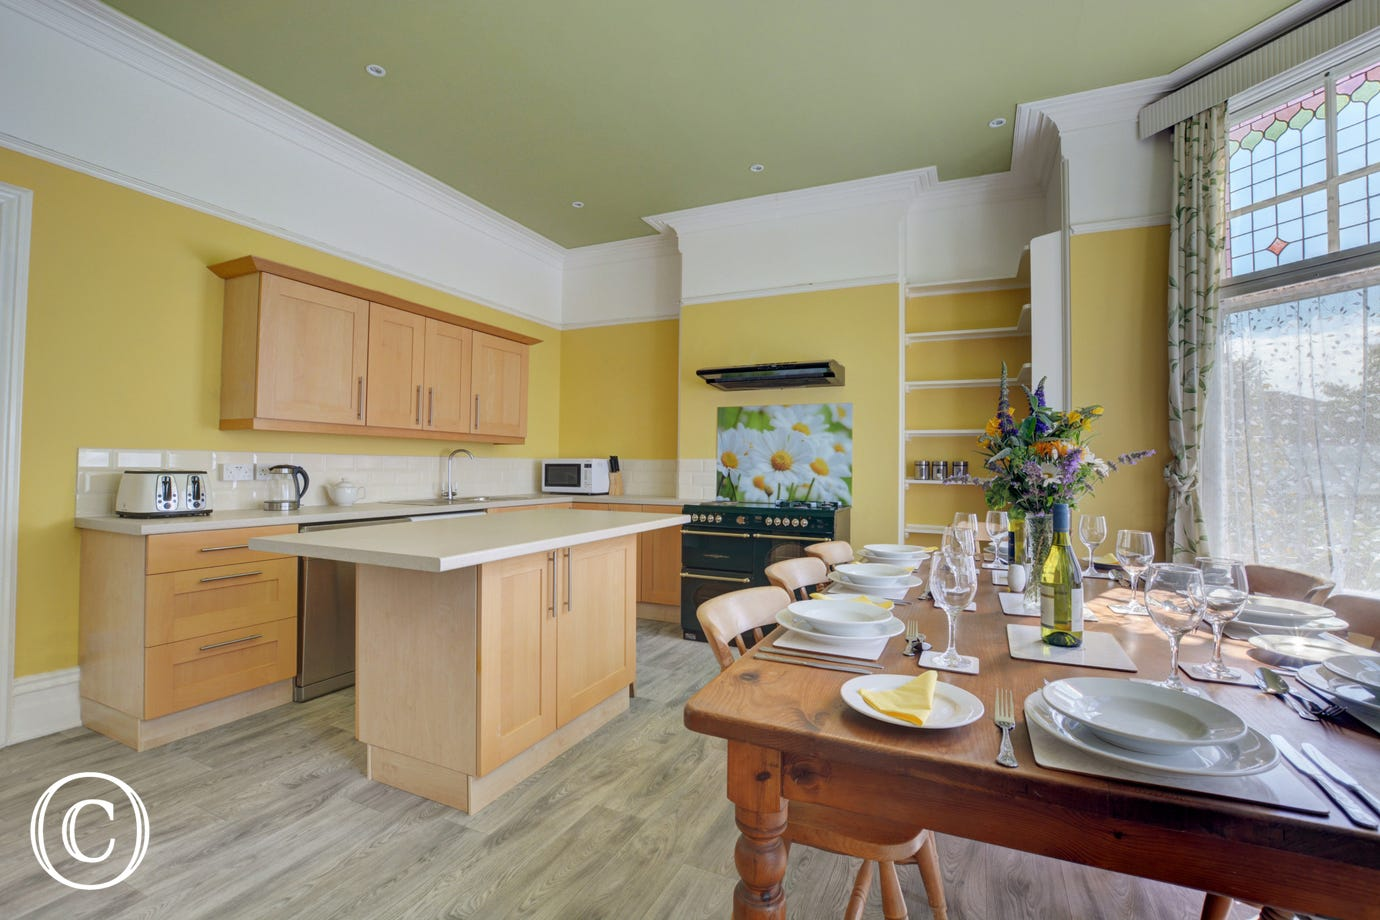 Kitchen with range cooker with two electric rings and three gas burners, electric oven and warming drawer, combination microwave, fridge/freezer, dishwasher, large dining table and eight chairs